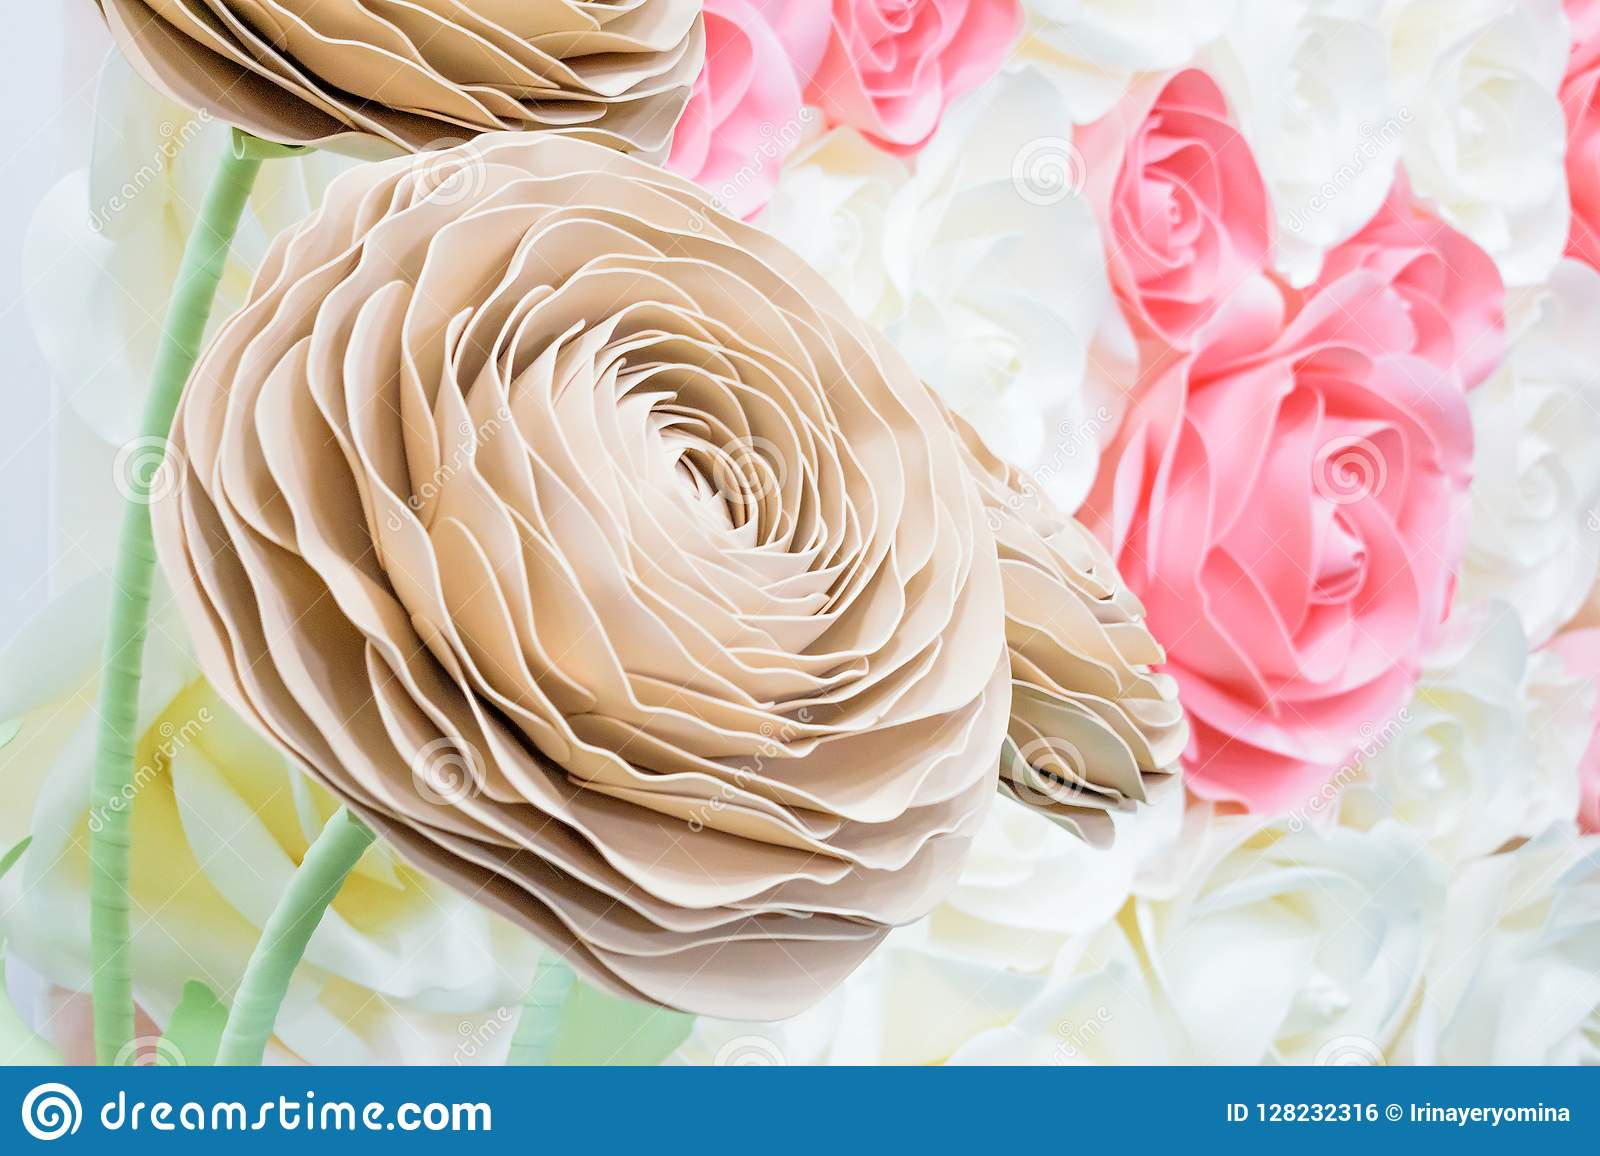 Large Giant Paper Flowers Big Pink White Beige Rose Peony Made